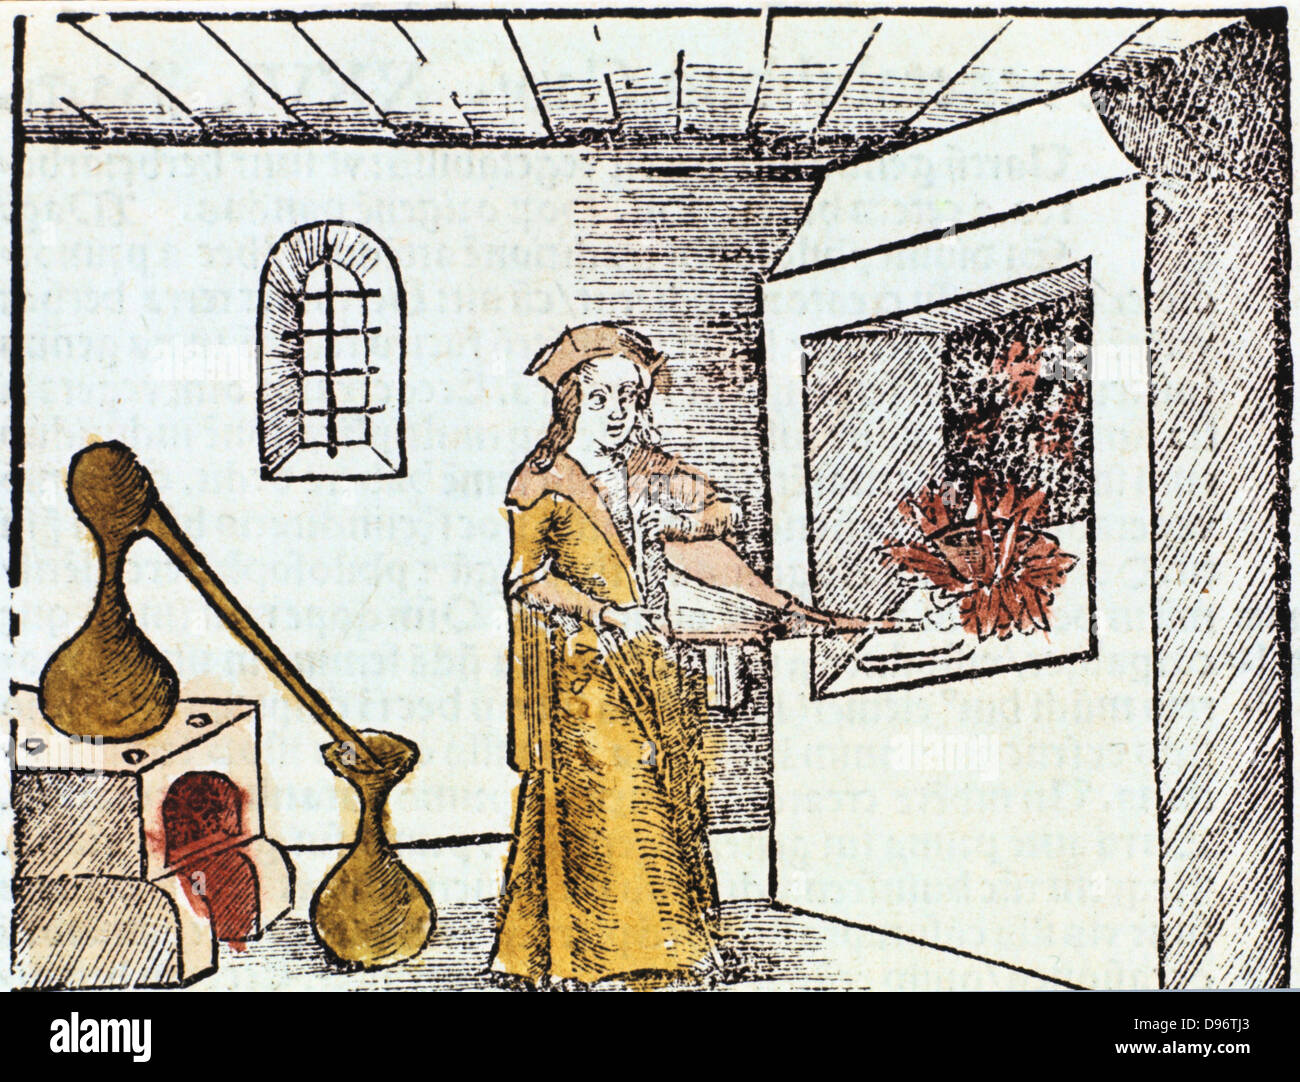 The Chemist, 1508, The Chemist or Alchemist is using bellows to heat up the fire under under a crucible. Behind - Stock Image